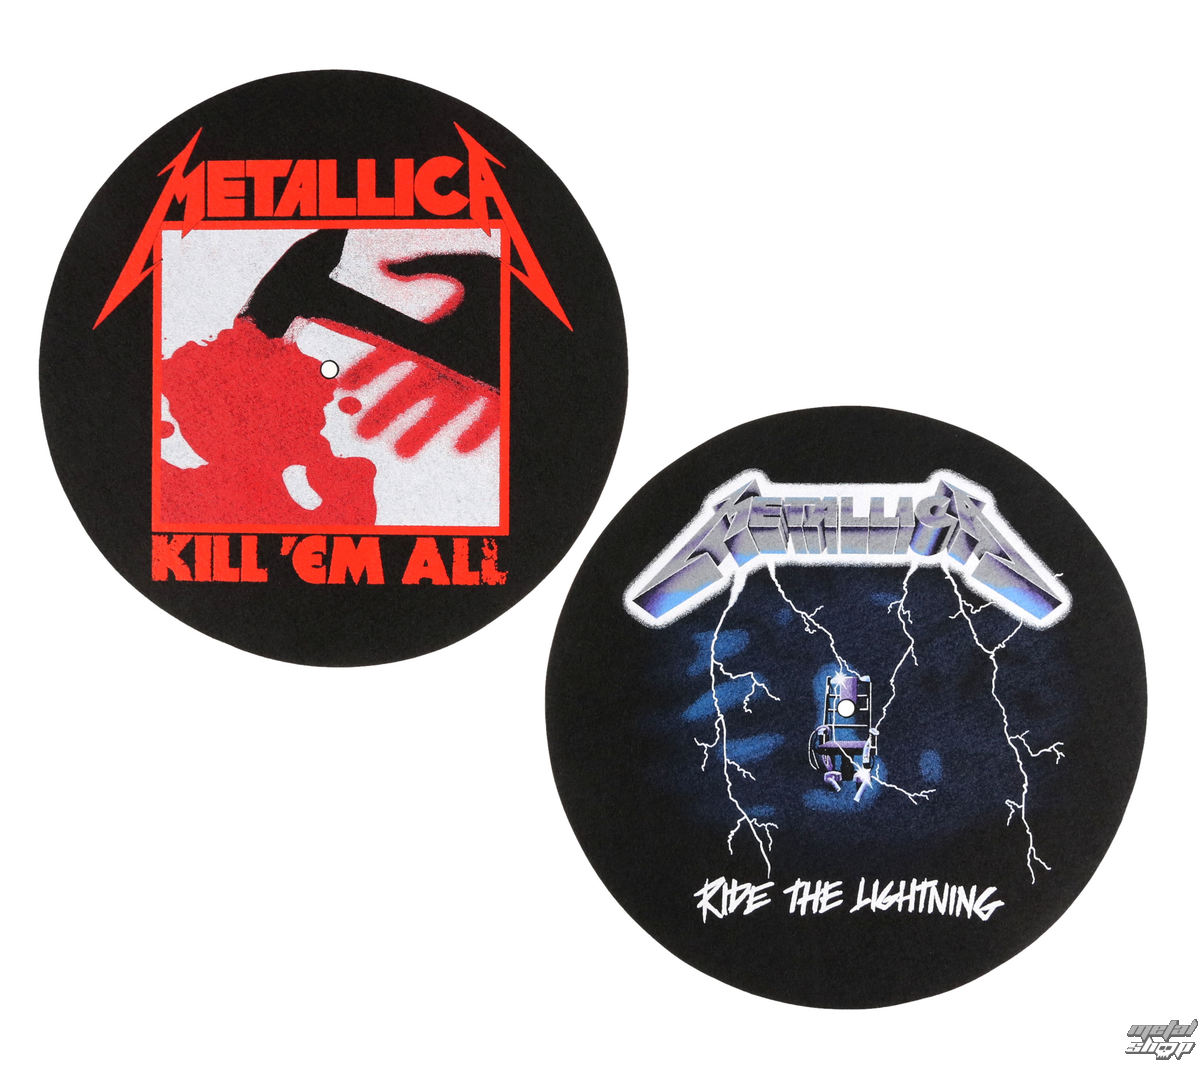 podložka na gramofon (set 2ks) METALLICA - KILL EM ALL - RIDE THE LIGHTENING - RAZAMATAZ - SM011